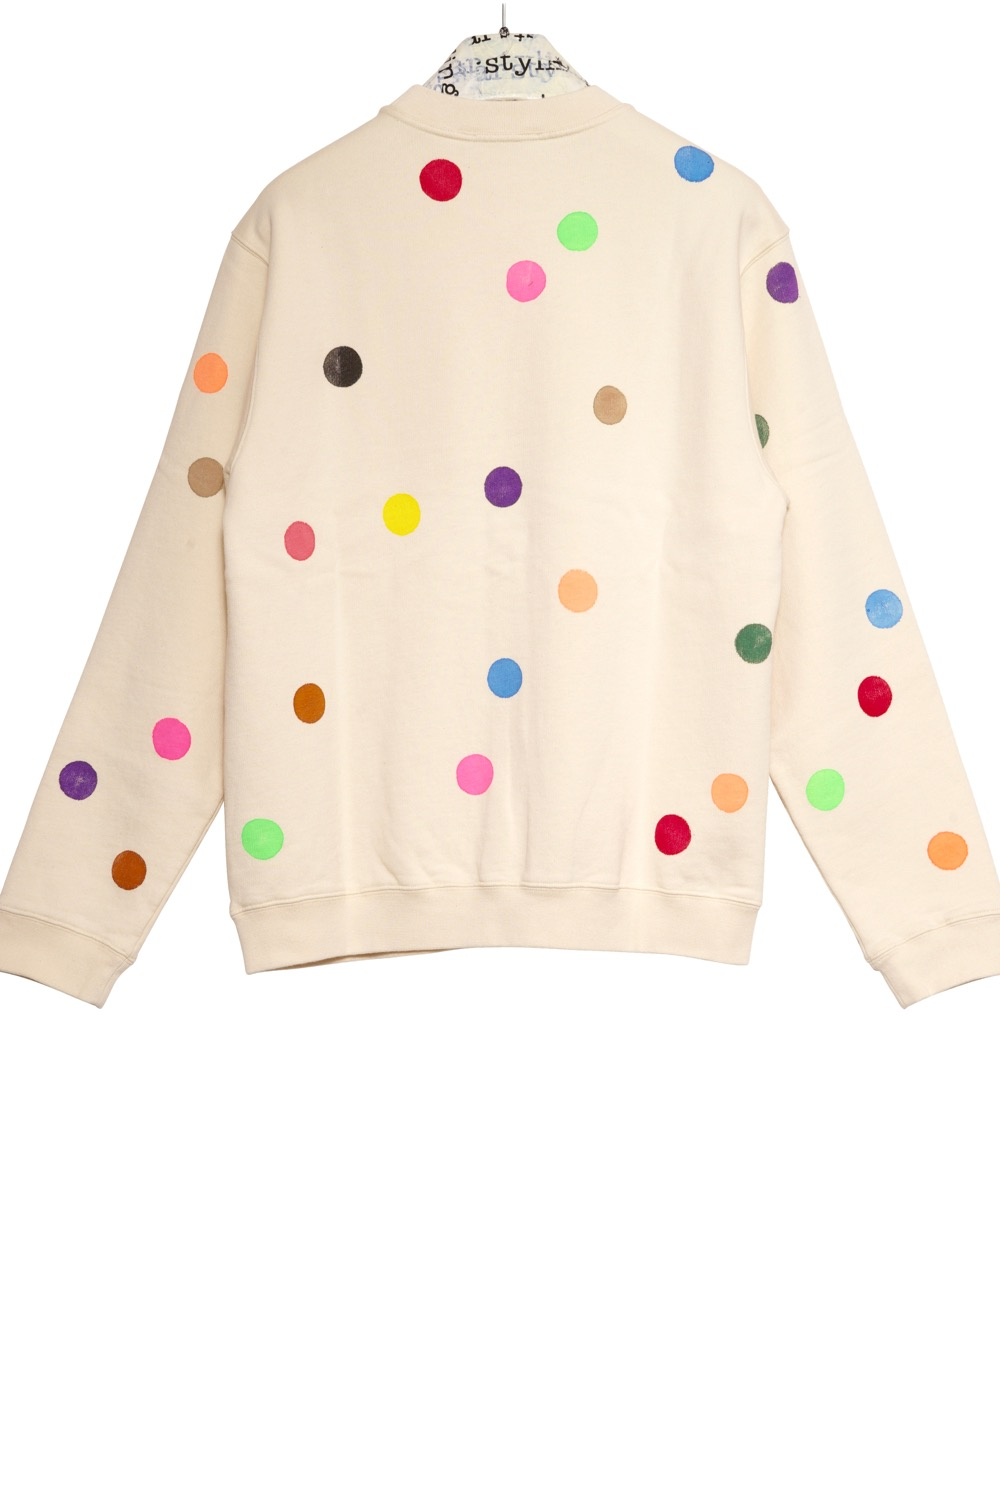 Painted Points Sweater - 0